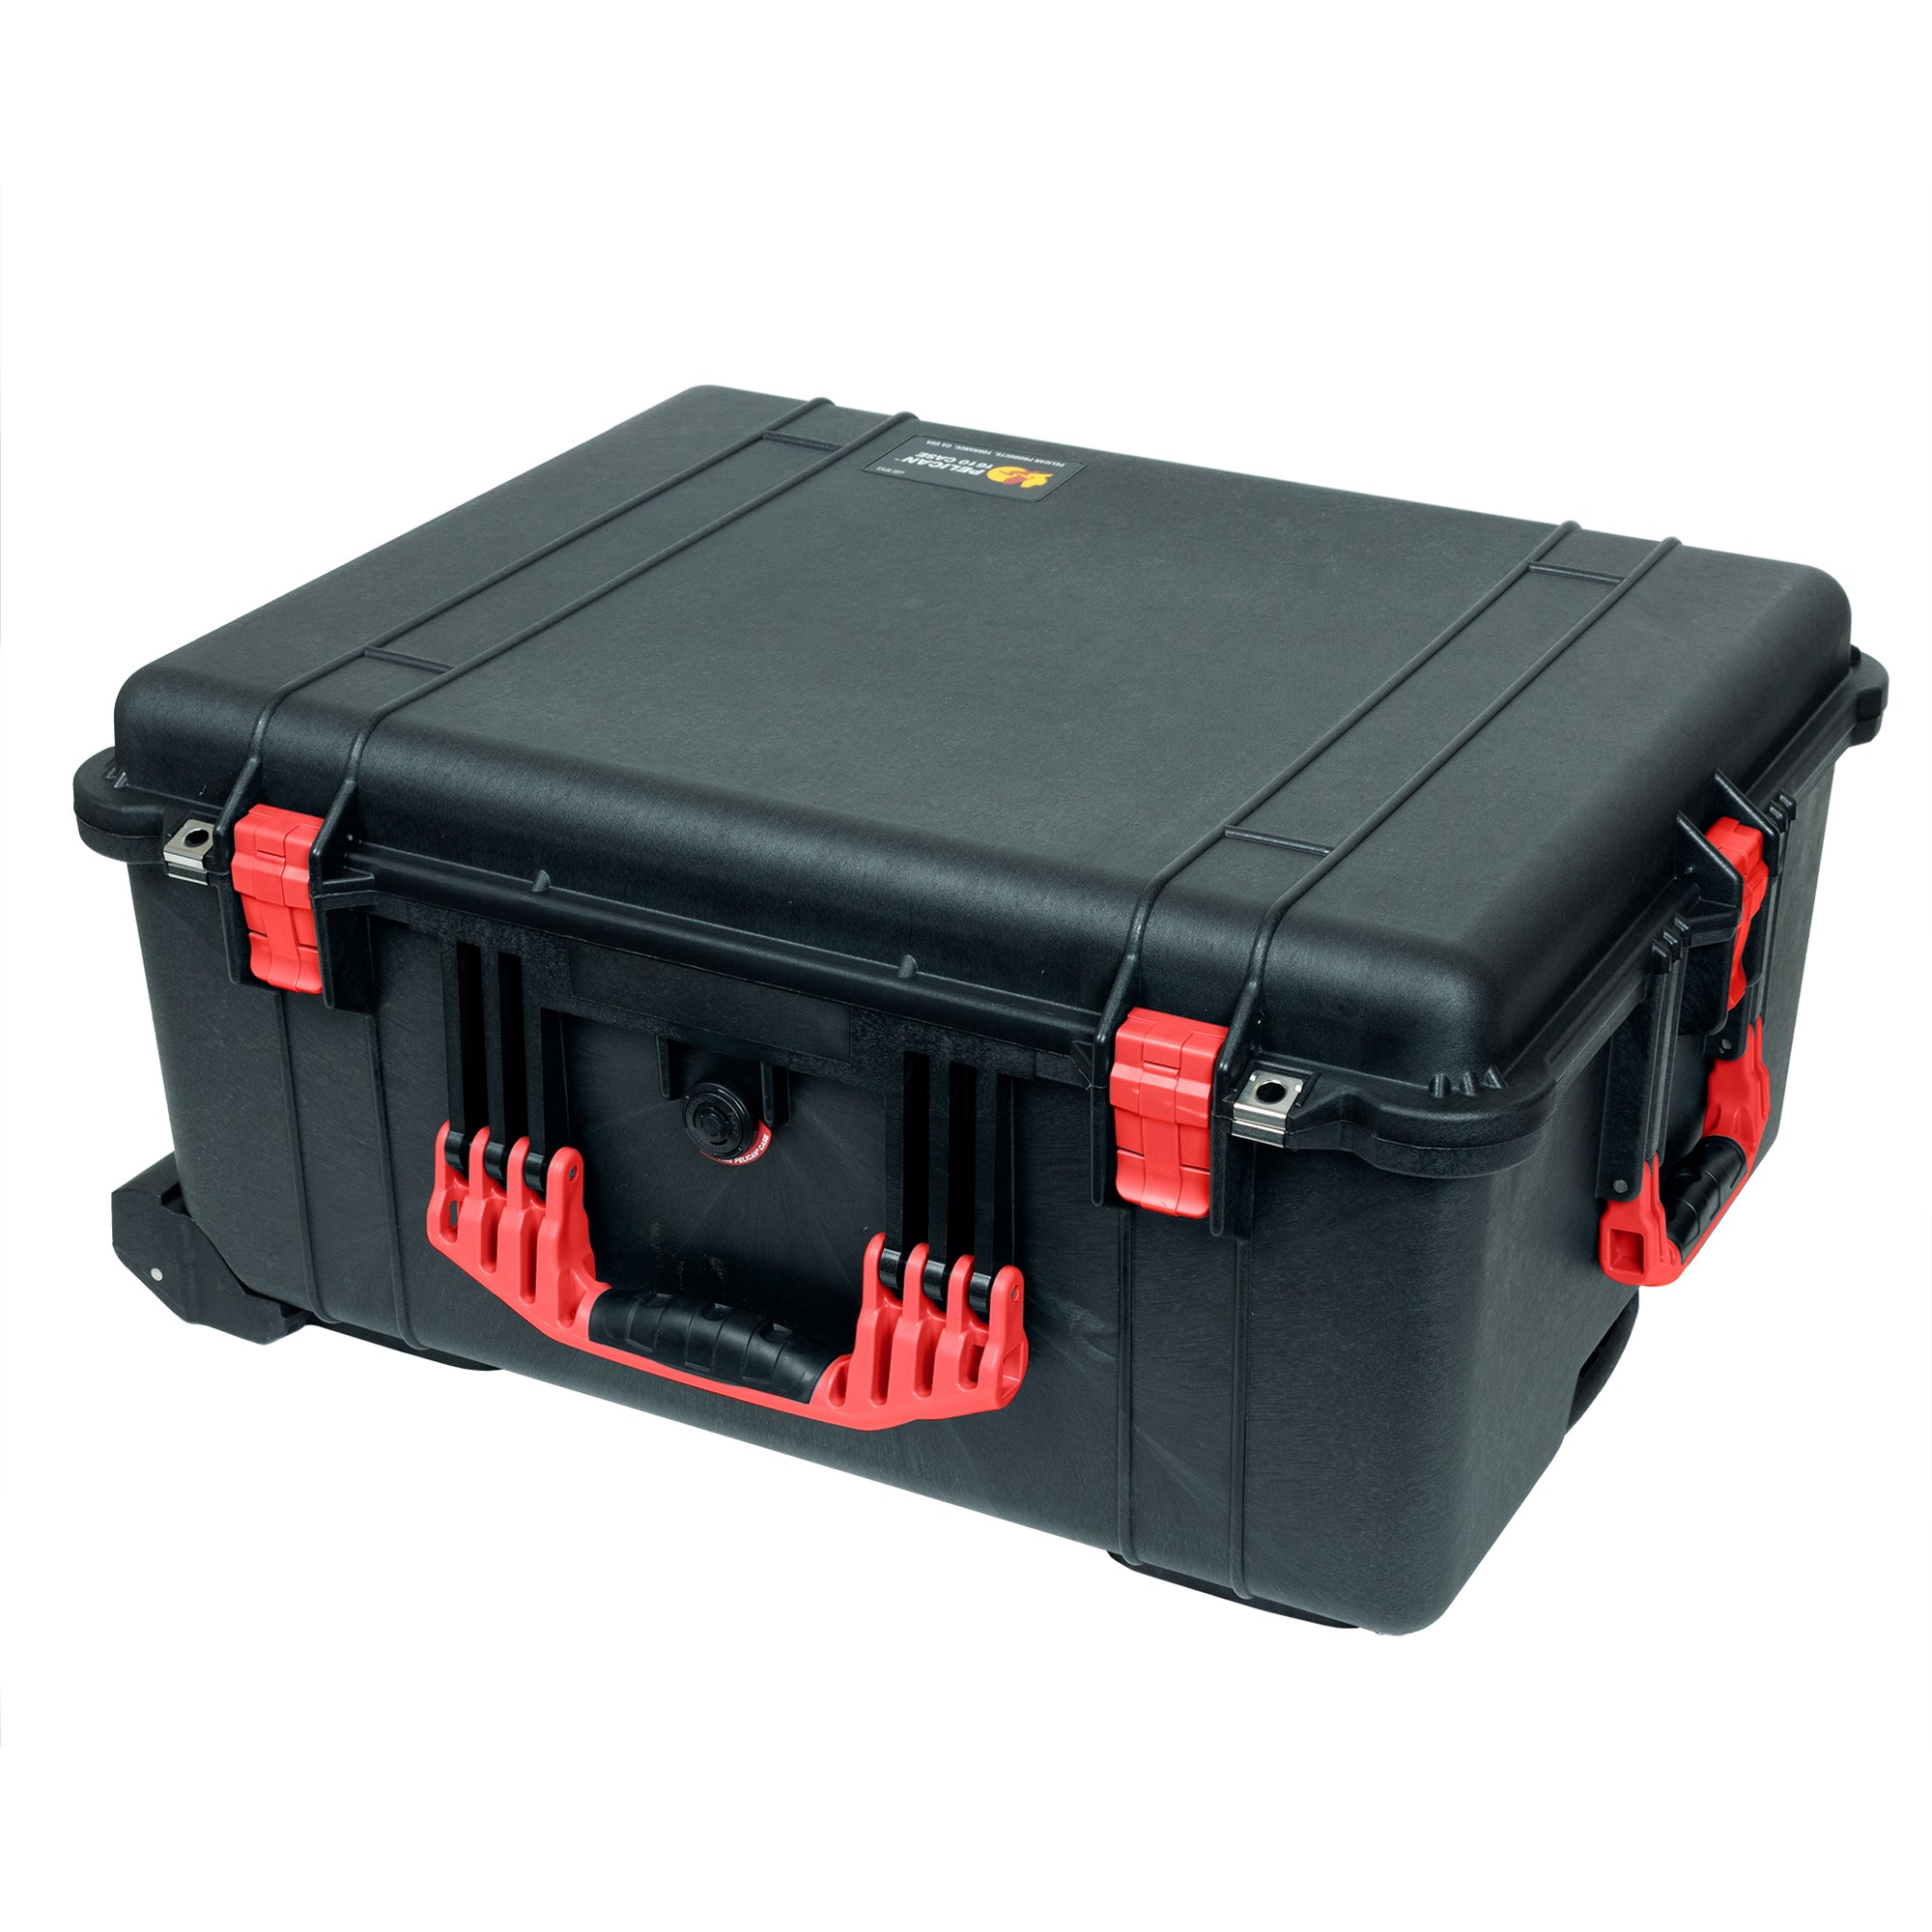 Pelican 1620 Case, Black with Red Handles & Latches